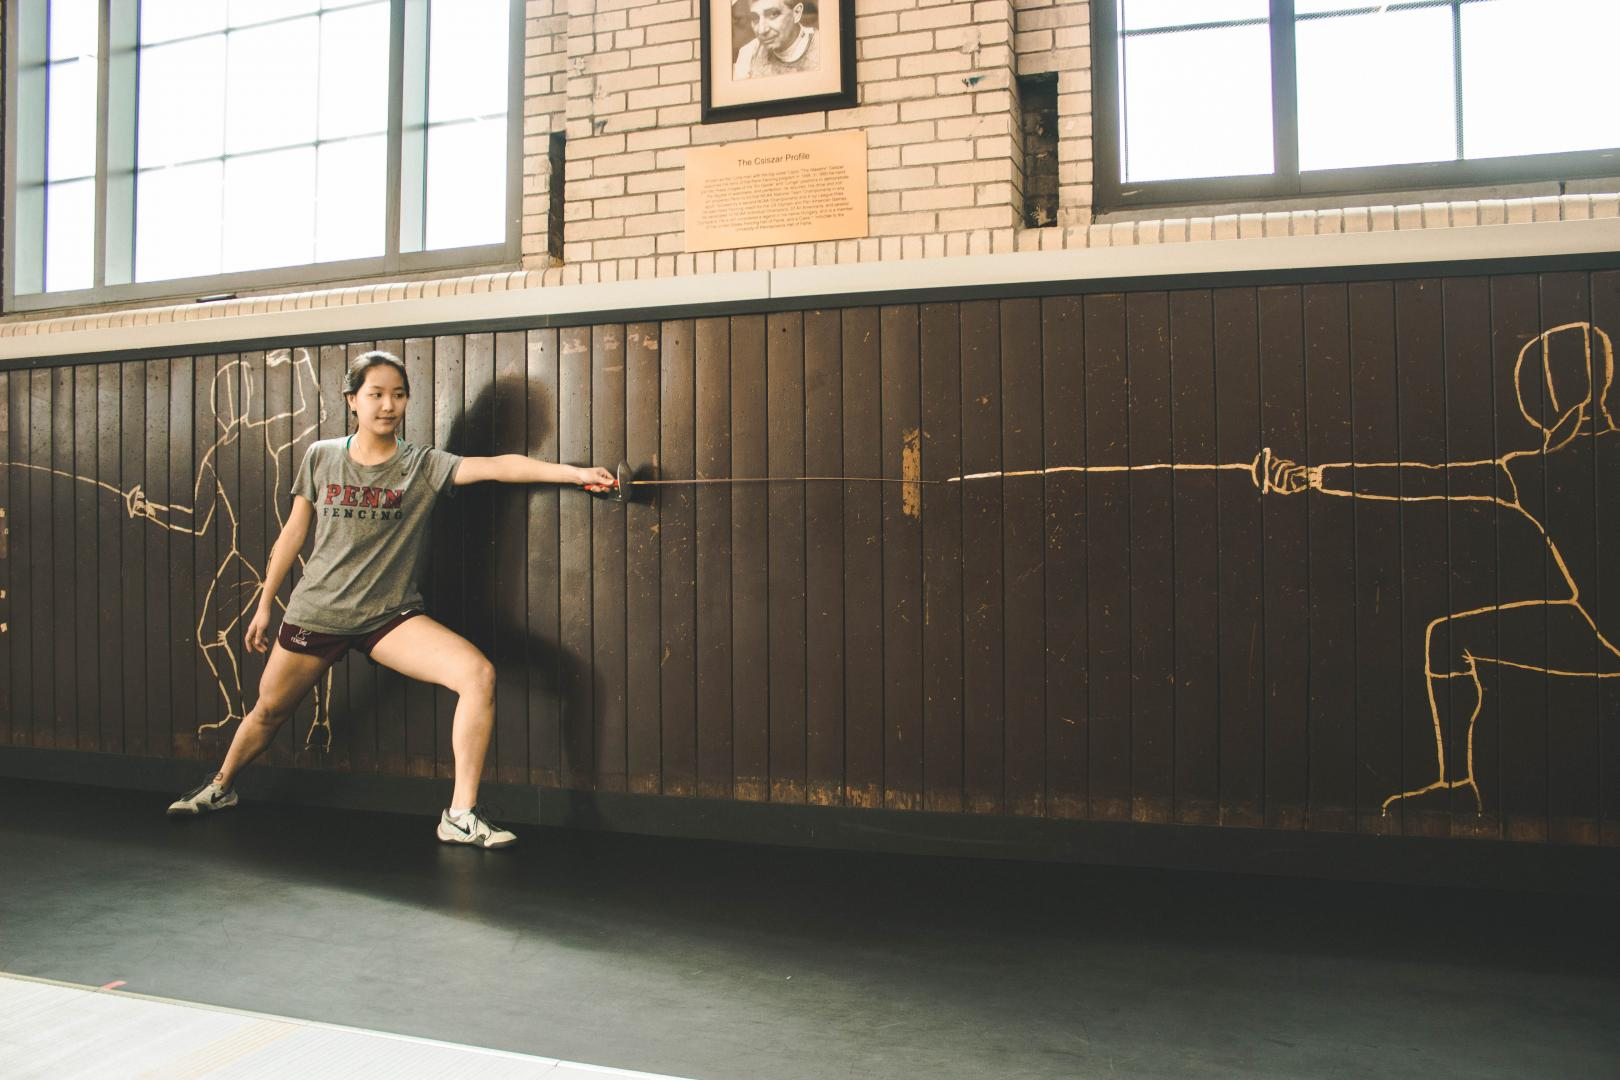 Penn student fencer in a training facility